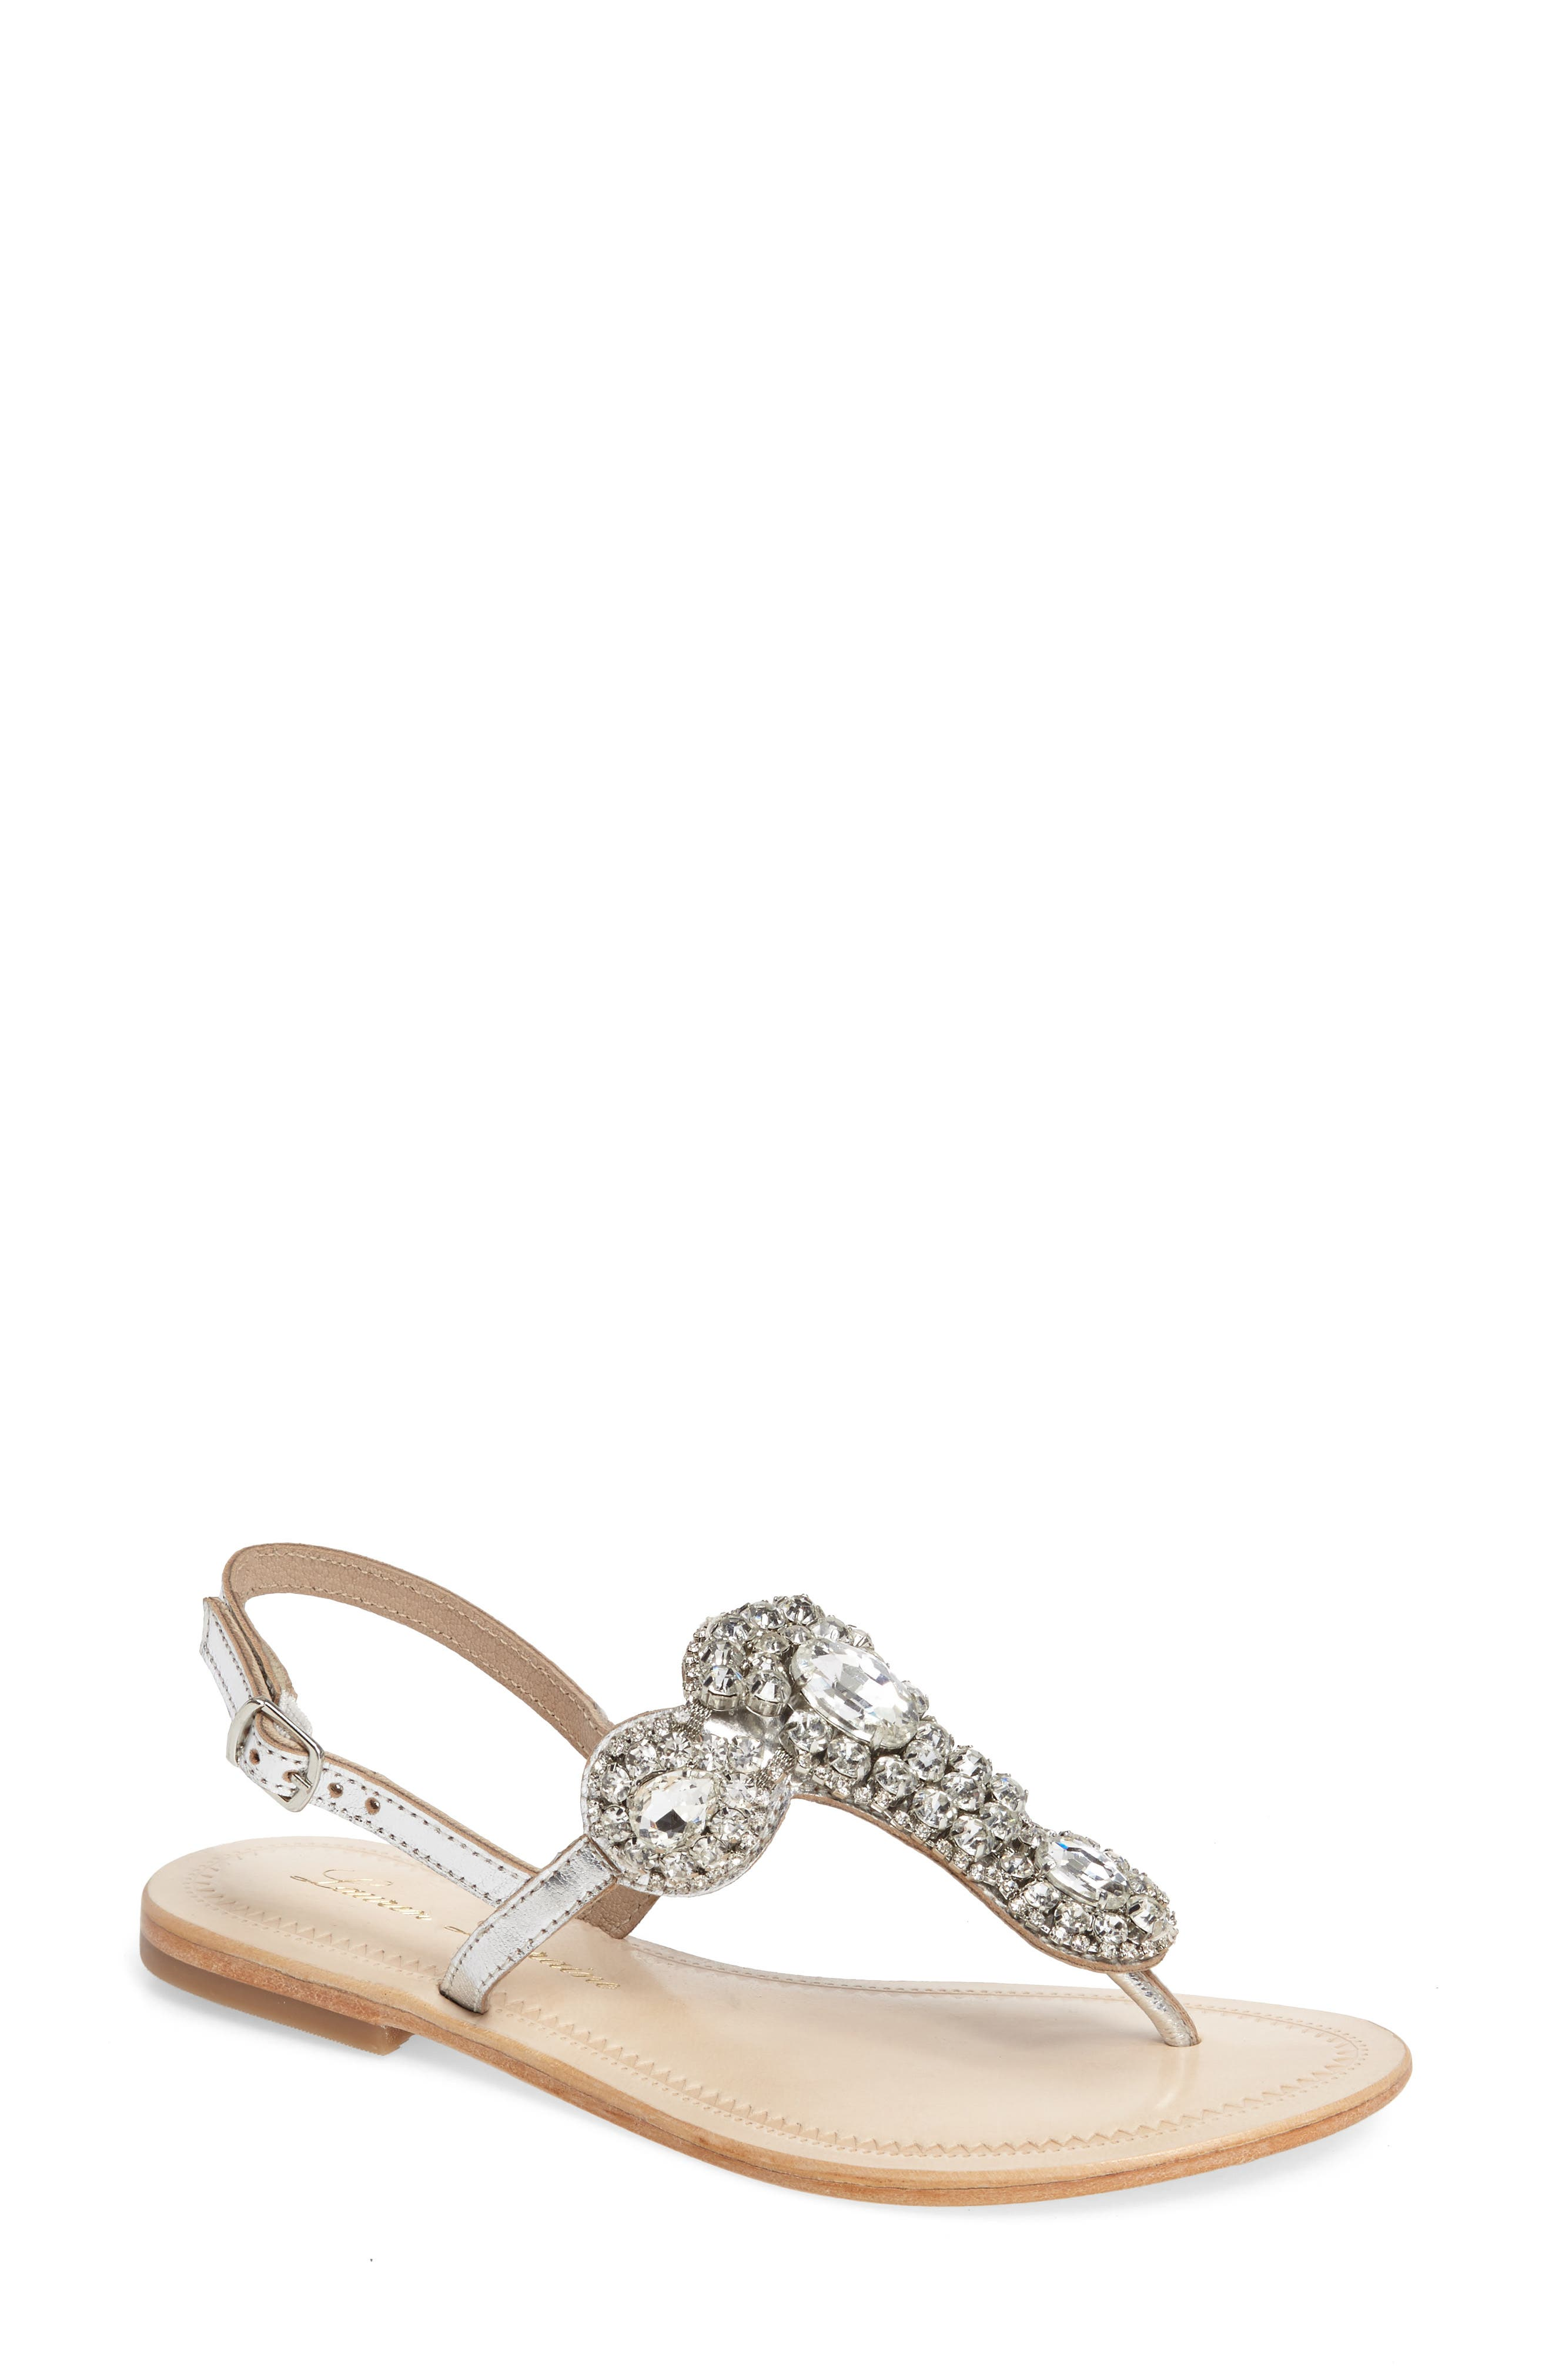 Bahama Crystal Embellished Sandal,                         Main,                         color, 045